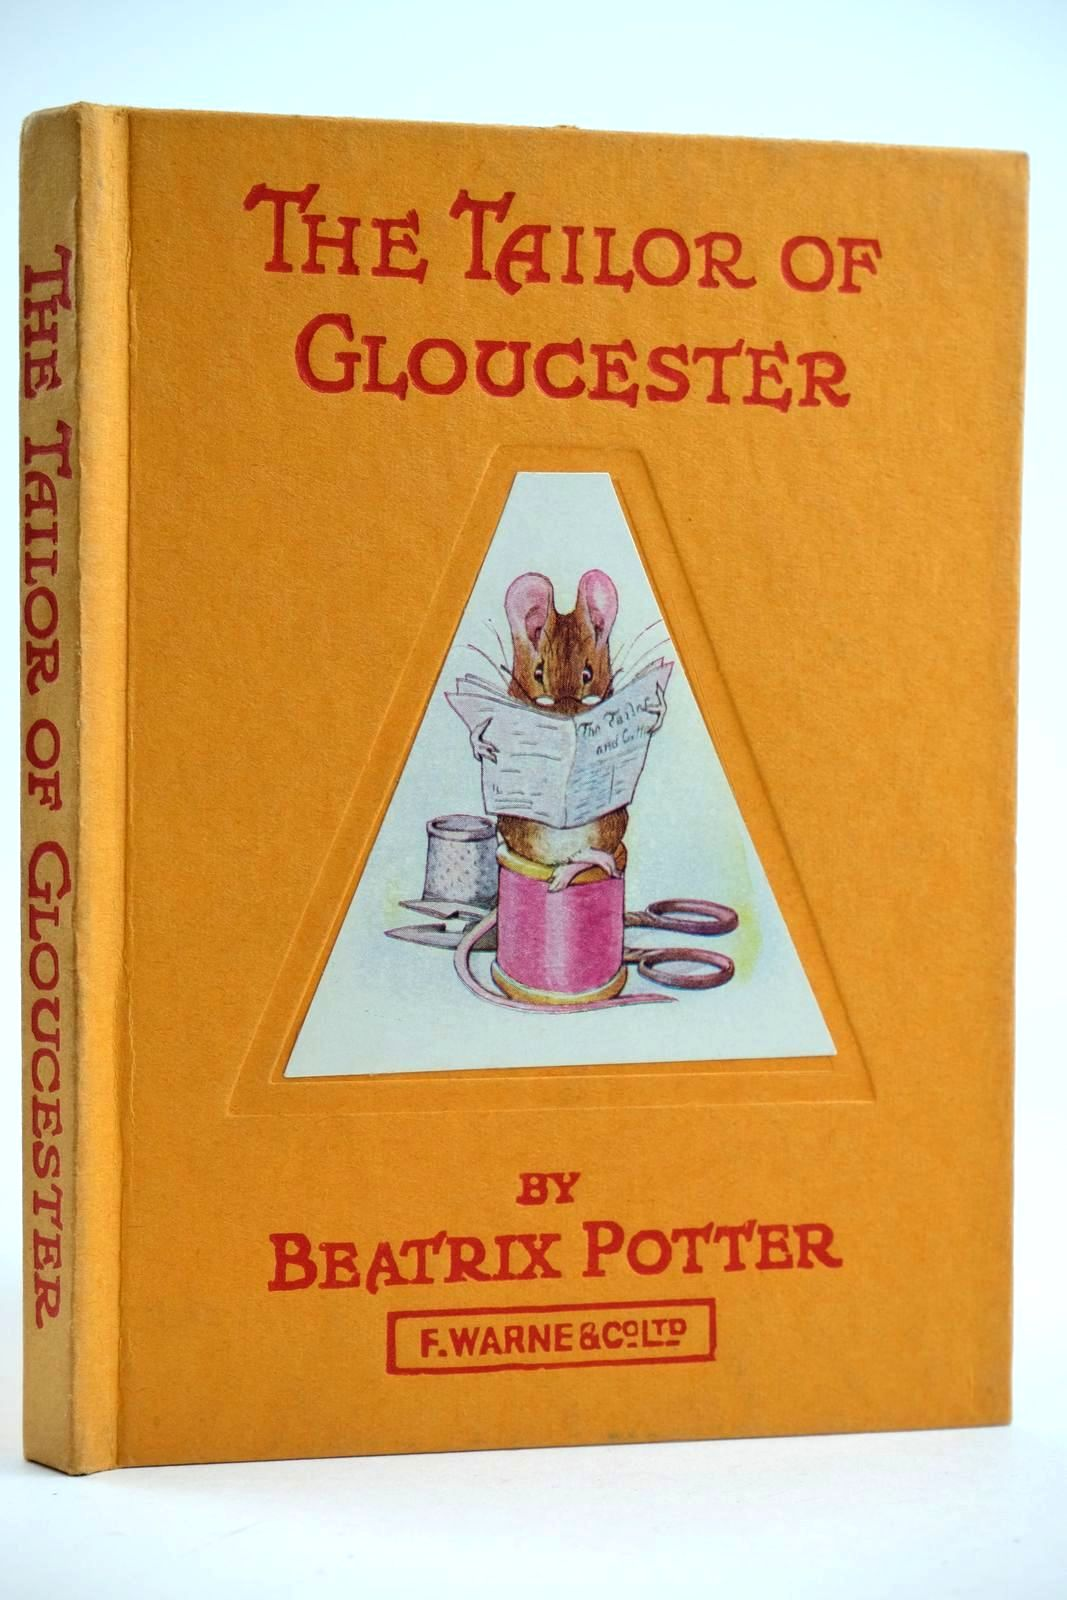 Photo of THE TAILOR OF GLOUCESTER written by Potter, Beatrix illustrated by Potter, Beatrix published by Frederick Warne & Co Ltd. (STOCK CODE: 2132068)  for sale by Stella & Rose's Books